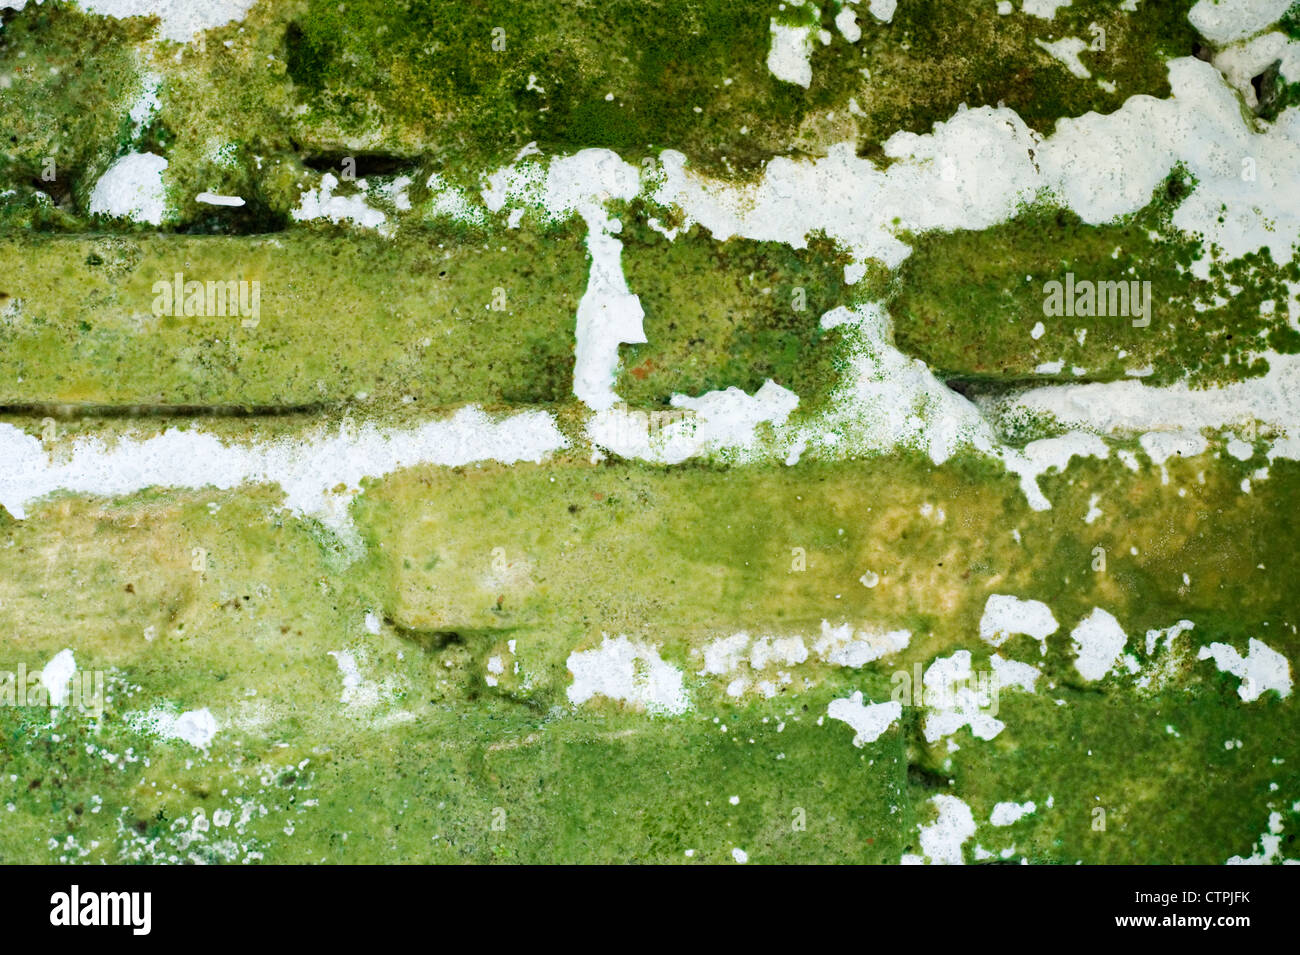 severe rising damp on a house exterior wall common sight in indonesia - Stock Image